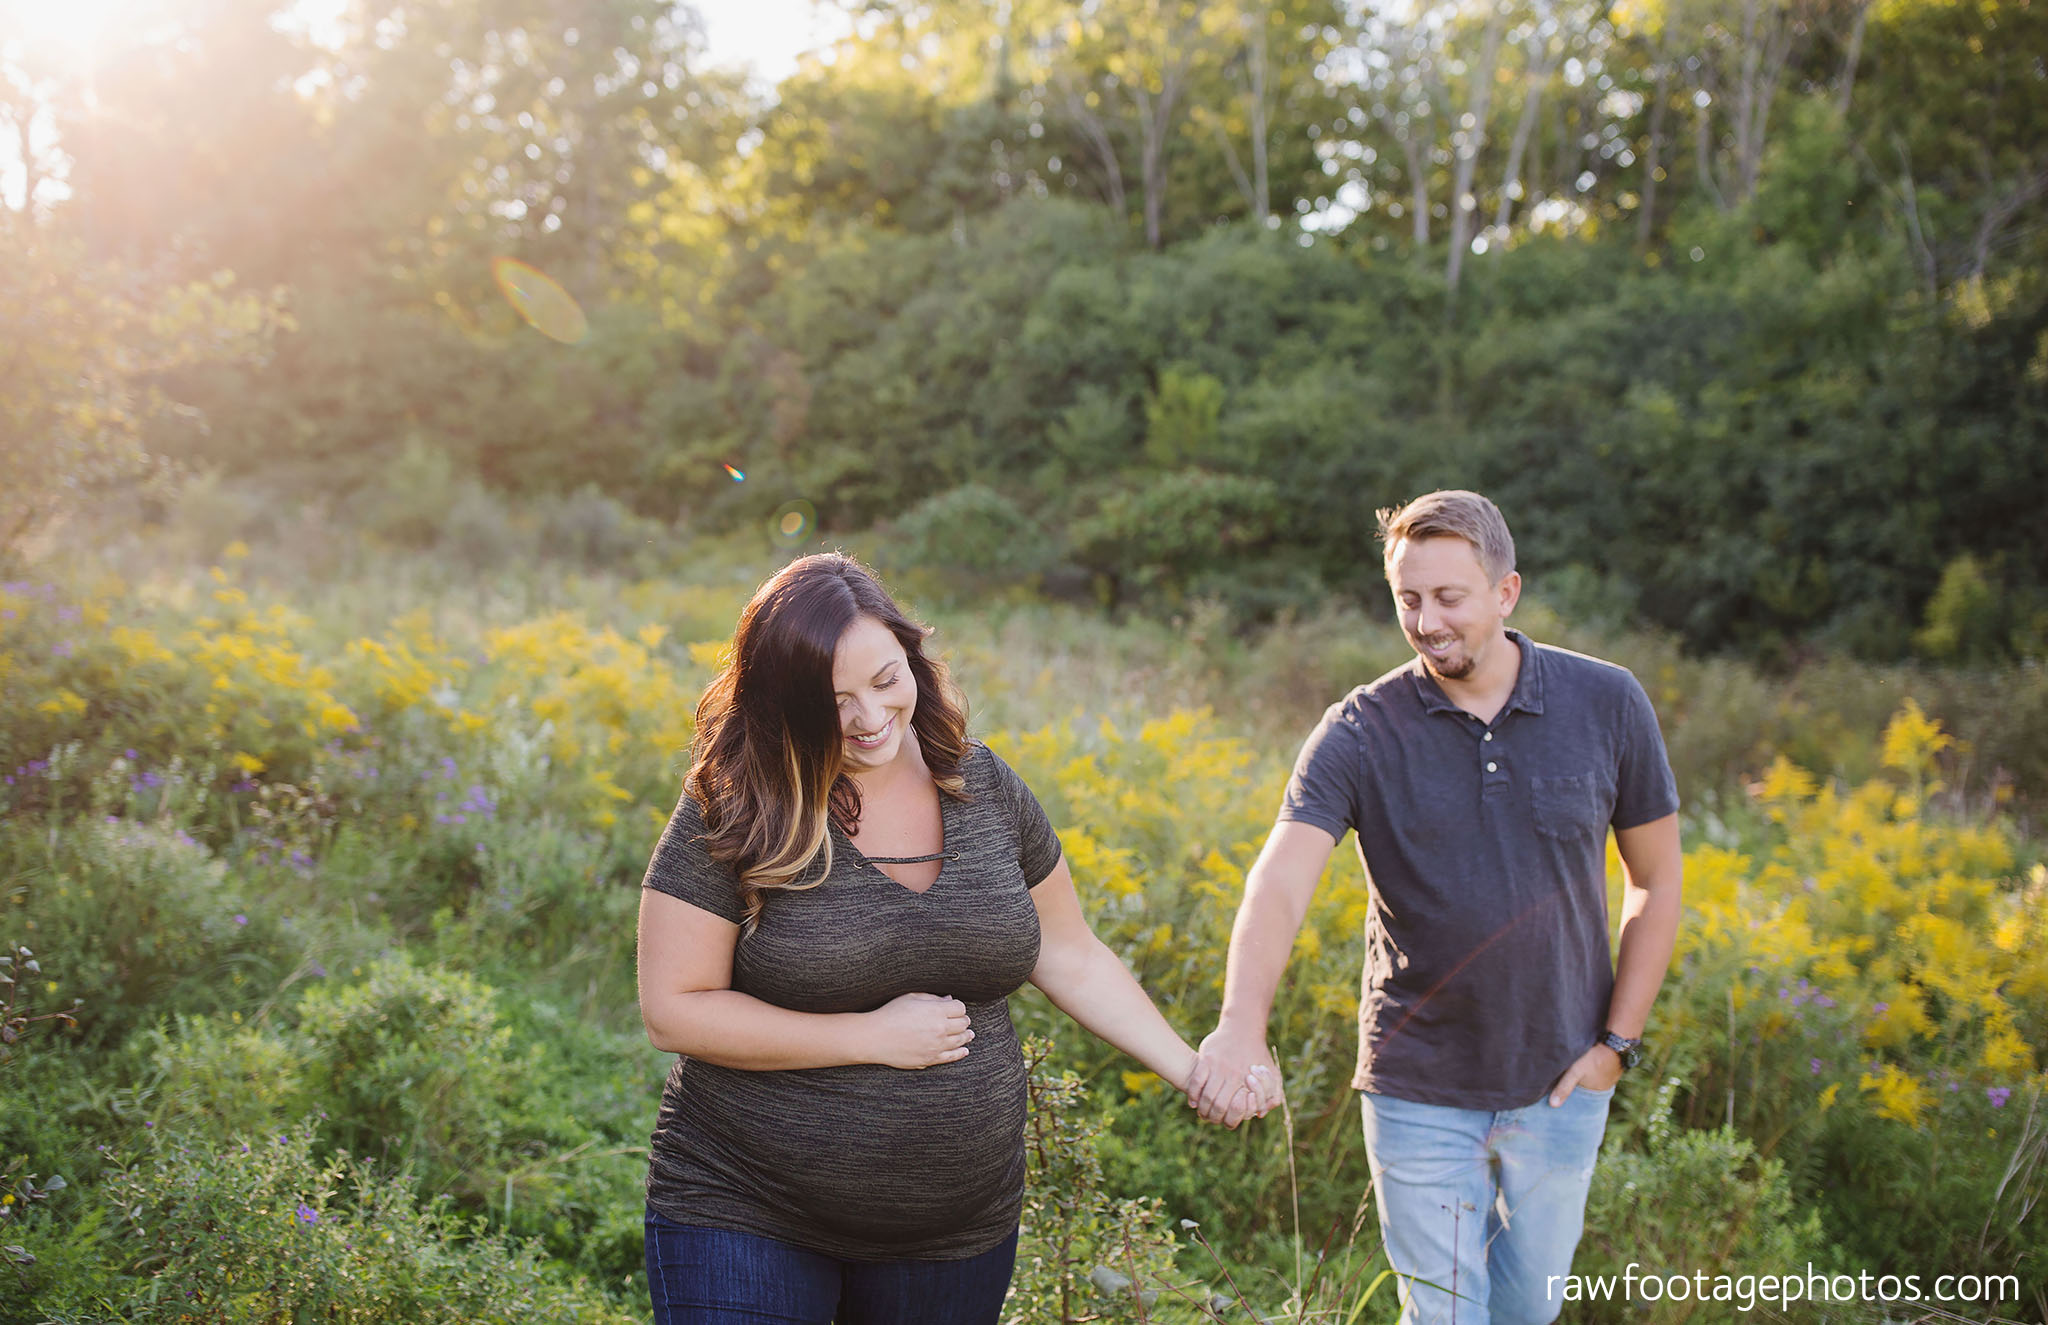 london_ontario_family_photography-lifestyle_photography-maternity_photos-raw_footage_photography-best_of_2018115.jpg